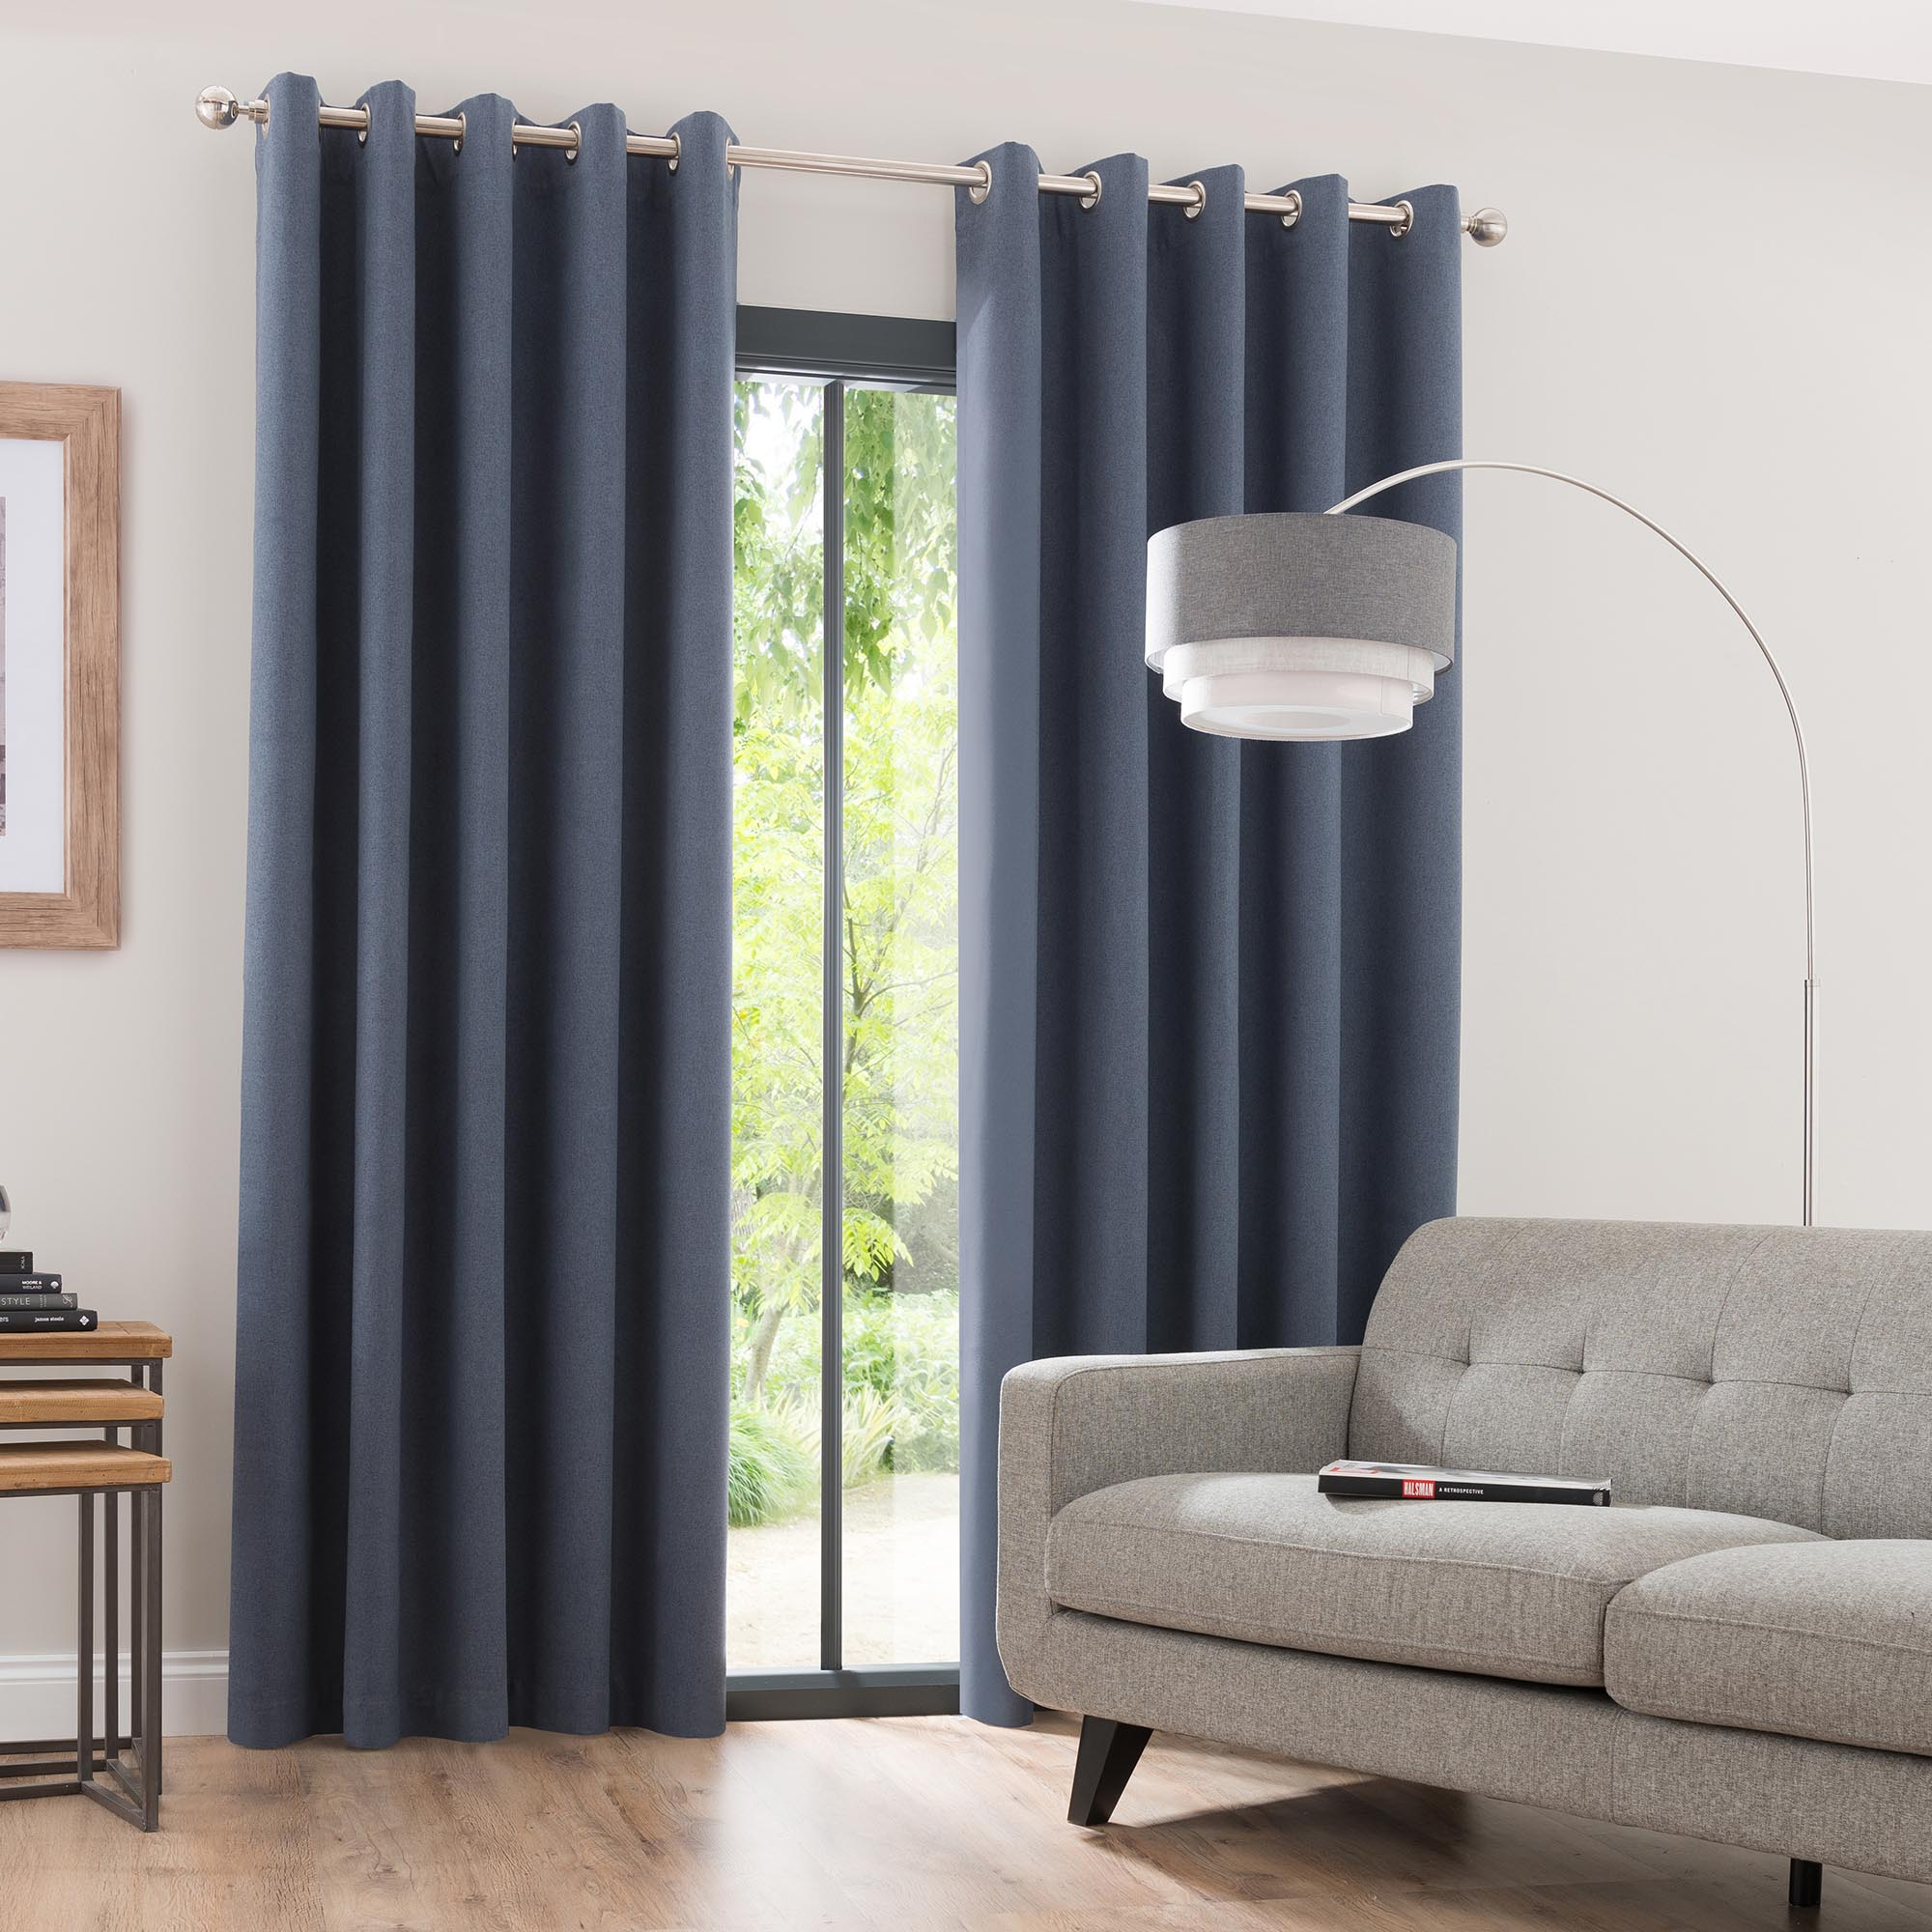 Photo of Luna brushed denim blackout eyelet curtains denim